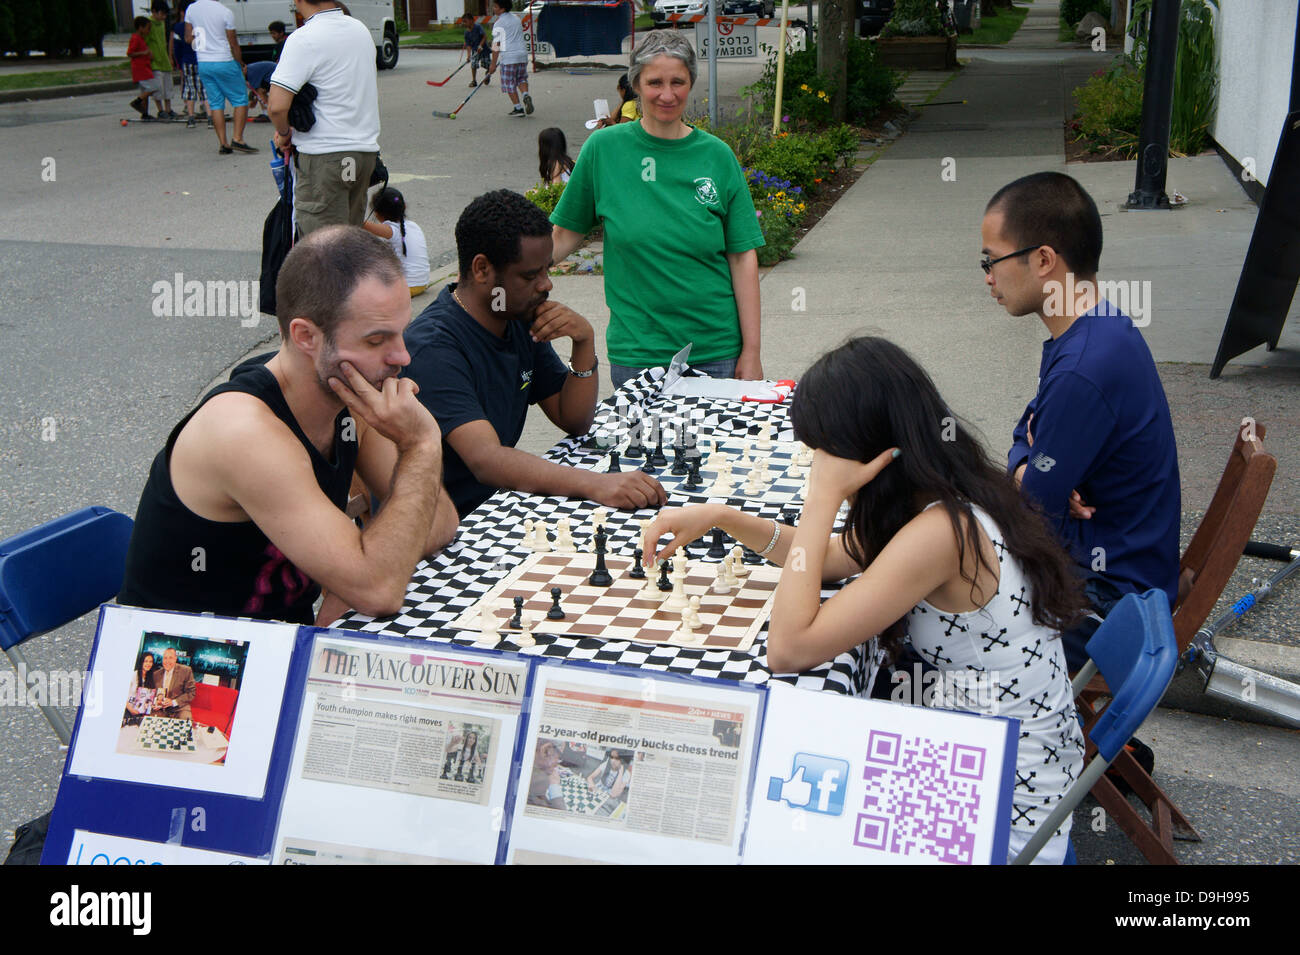 Young woman chess champion and people of different races playing chess outdoors on Main Street in Vancouver, BC, - Stock Image